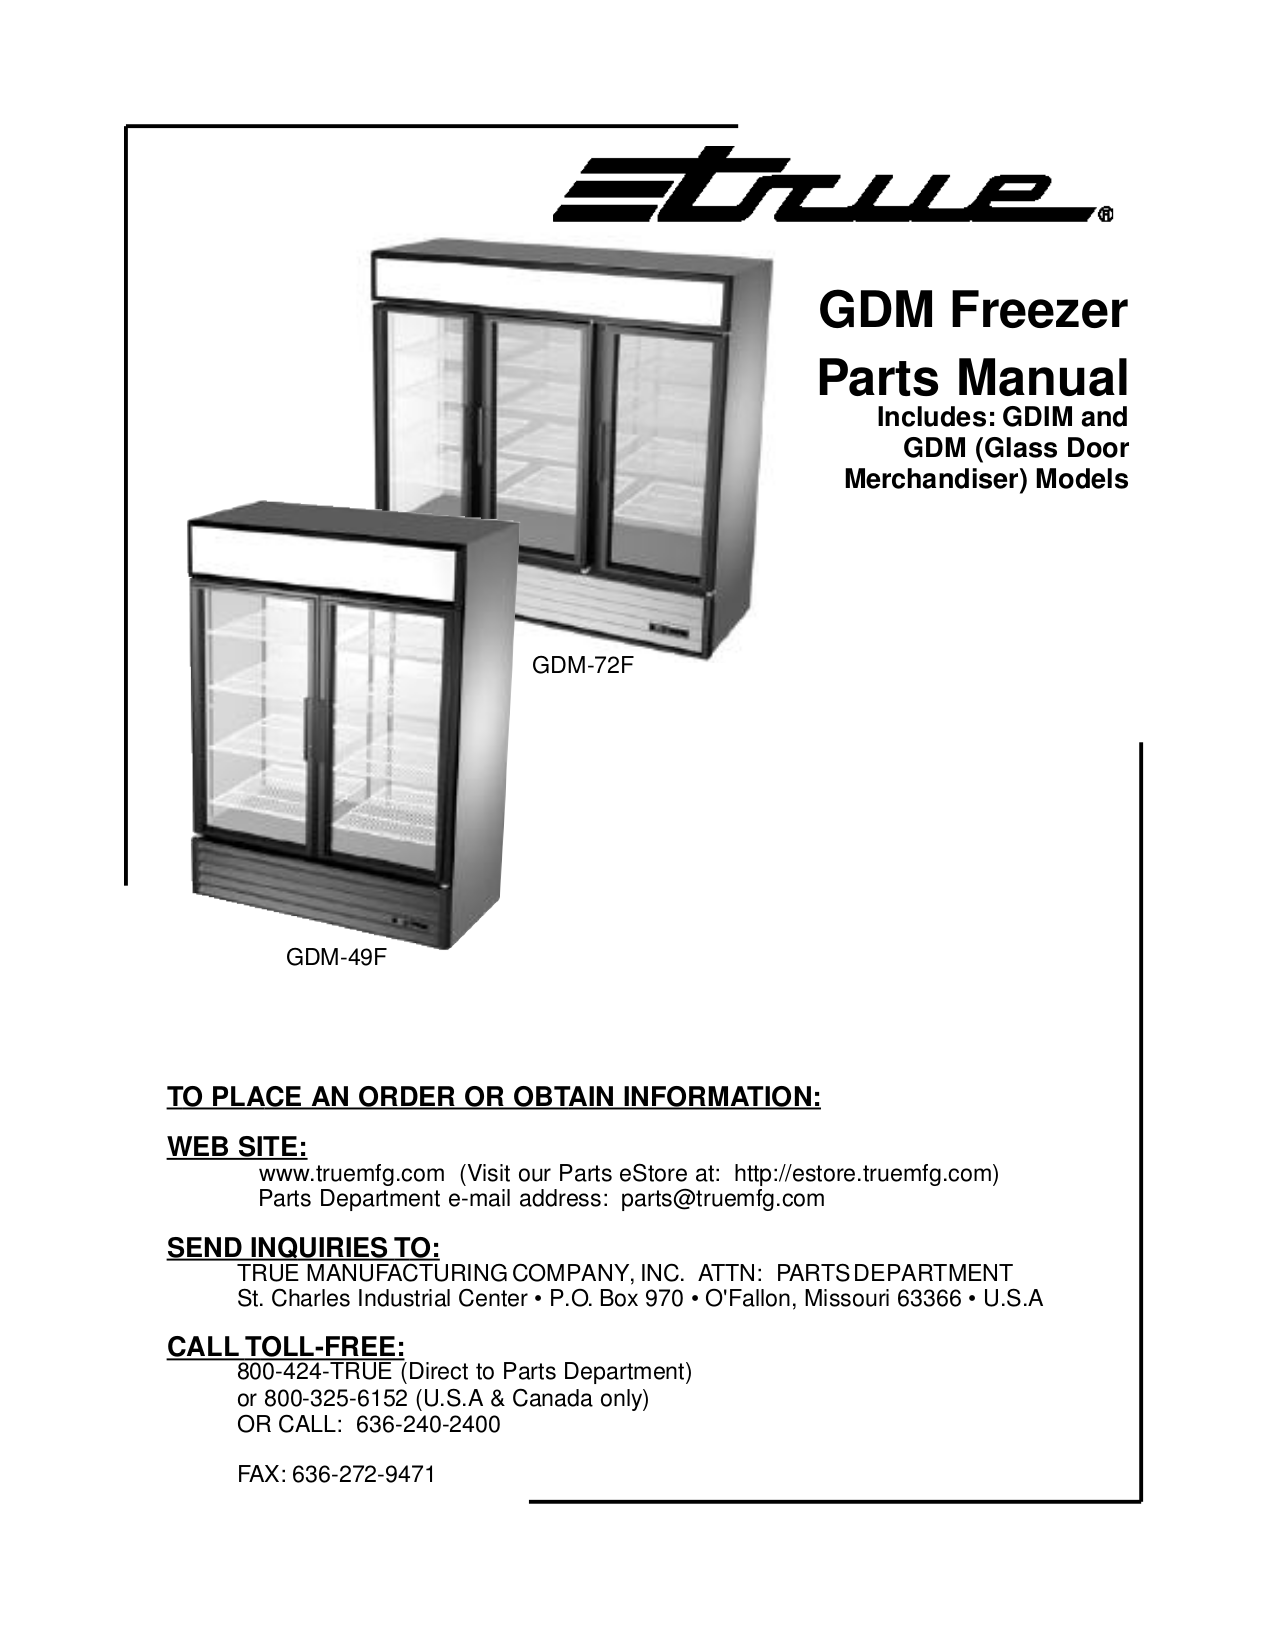 PI6DF1~1.PDF 0 download free pdf for true gdm 72f freezer manual true freezer t-23f wiring diagram at gsmportal.co